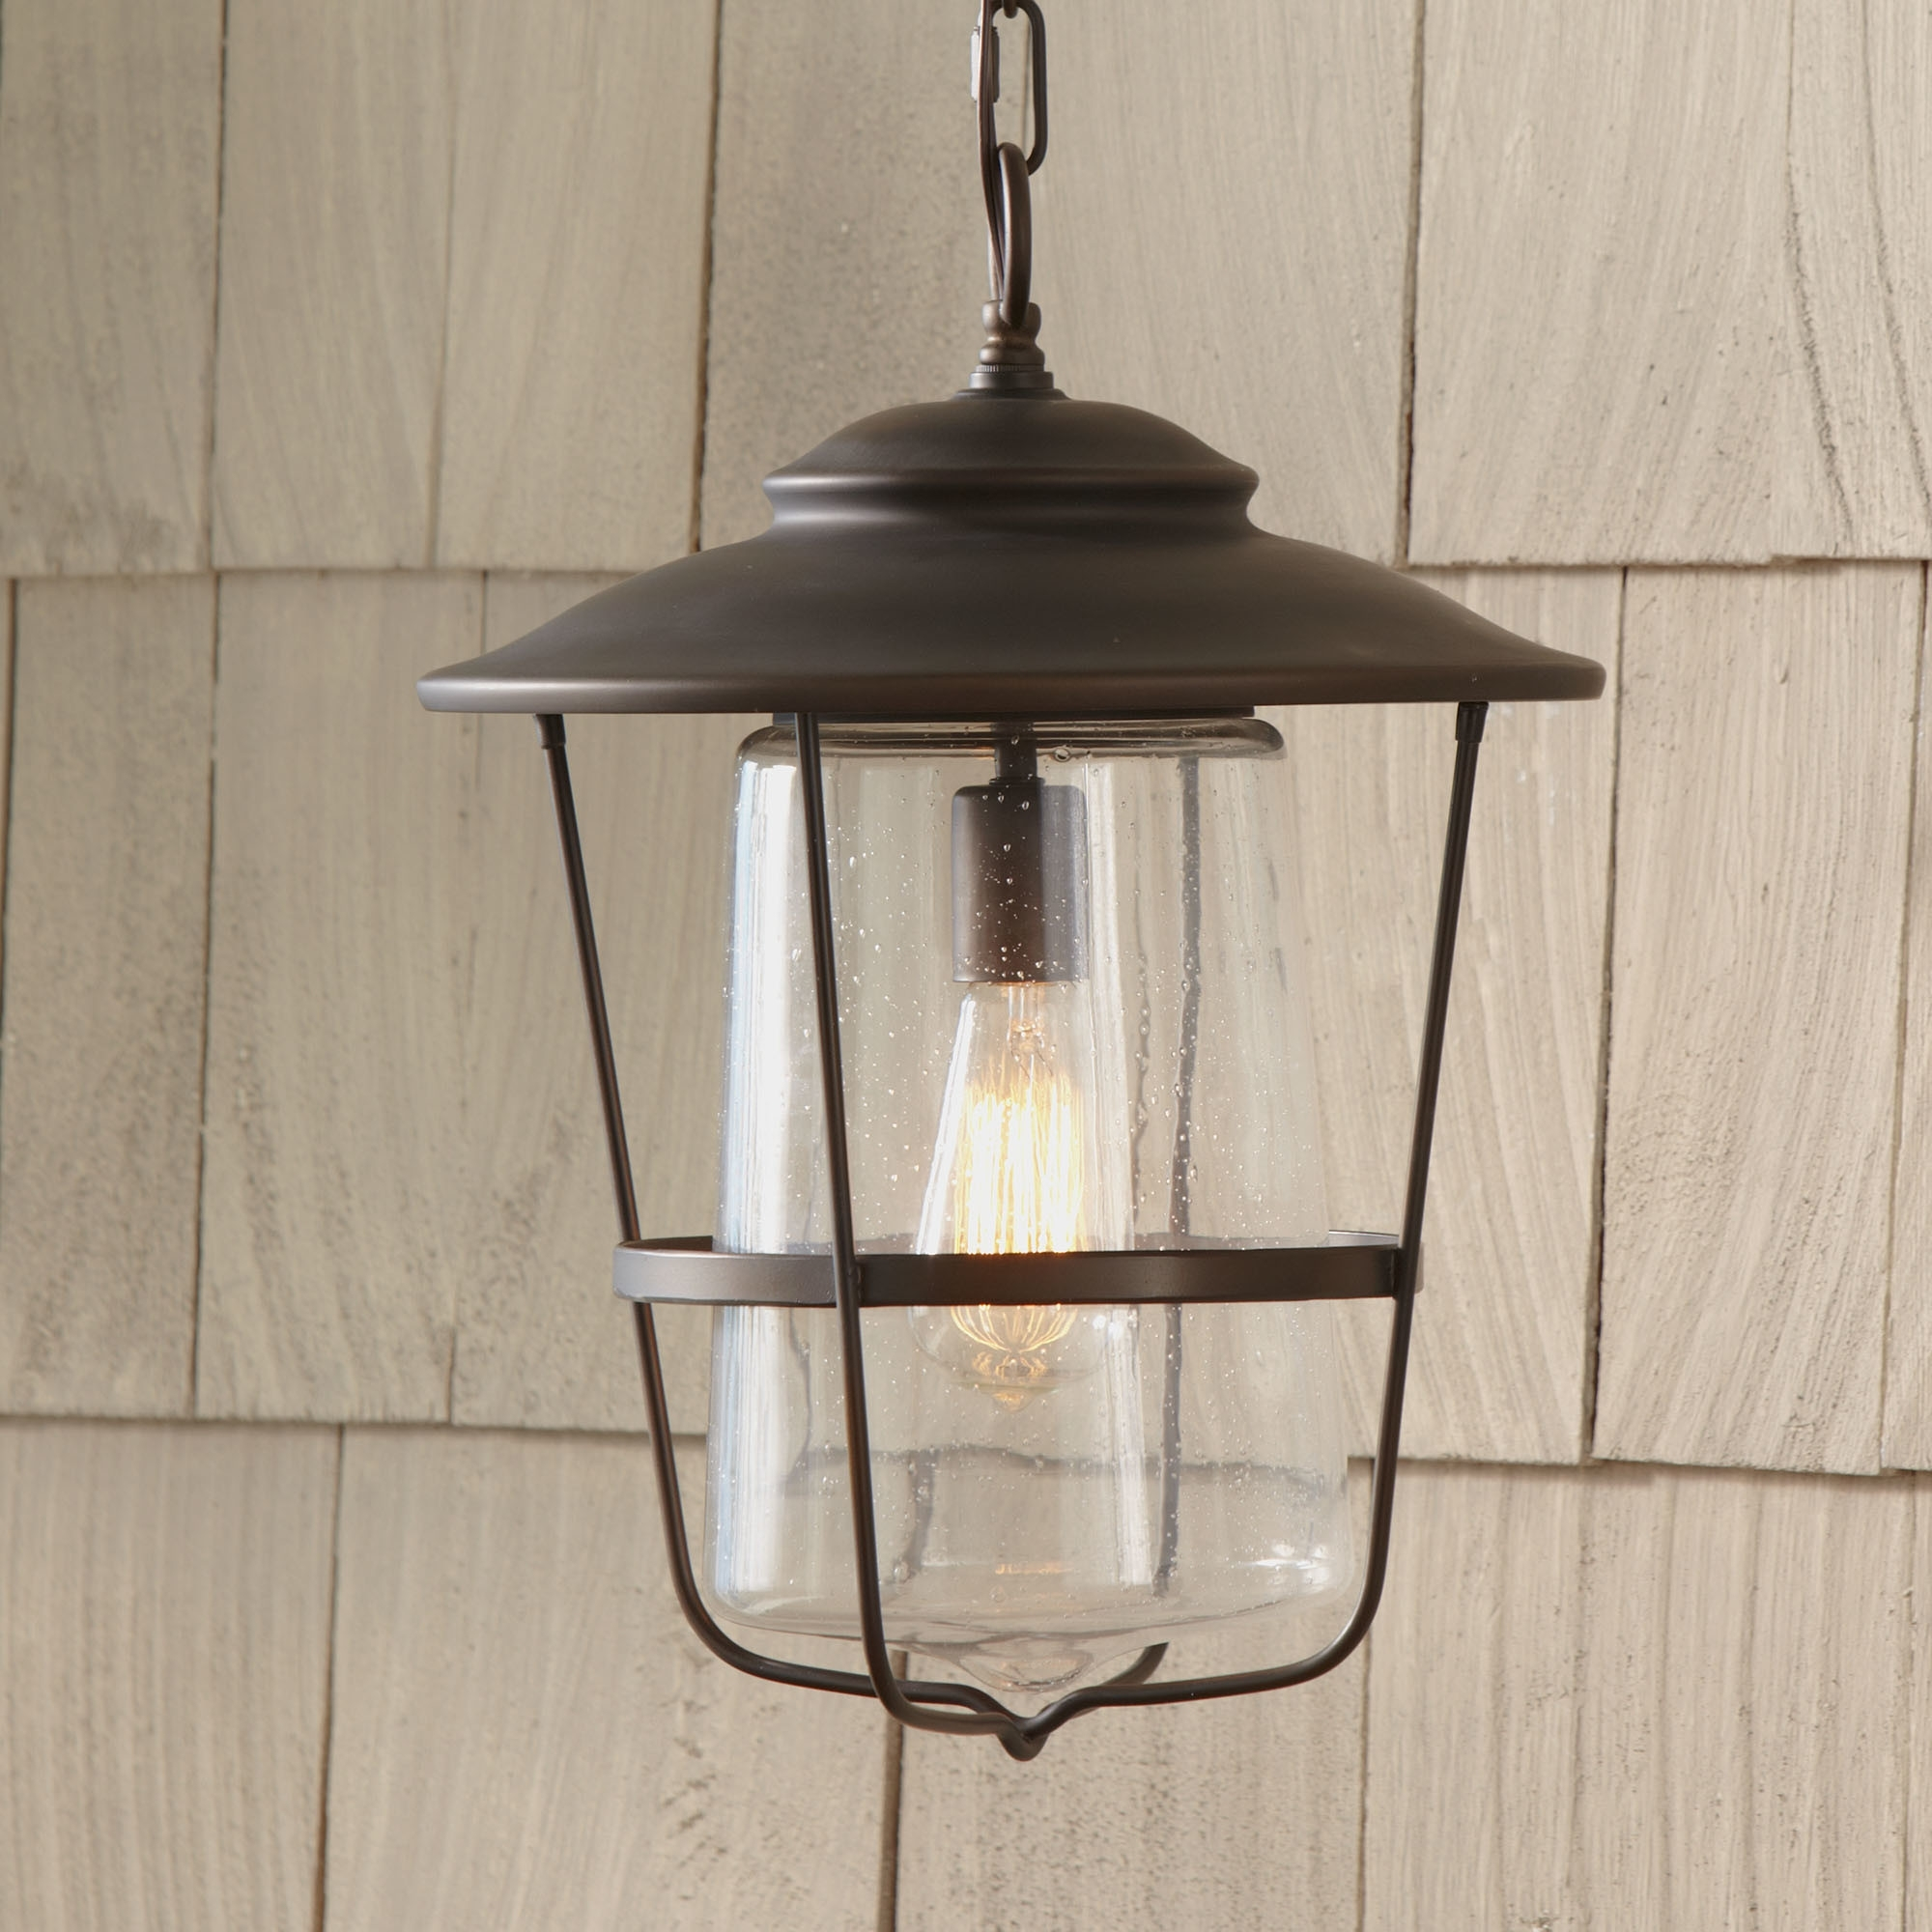 Outdoor Wall Lighting Wayfair 1 Light Lantern ~ Loversiq With Regard To Famous Ikea Outdoor Hanging Lights (View 9 of 20)